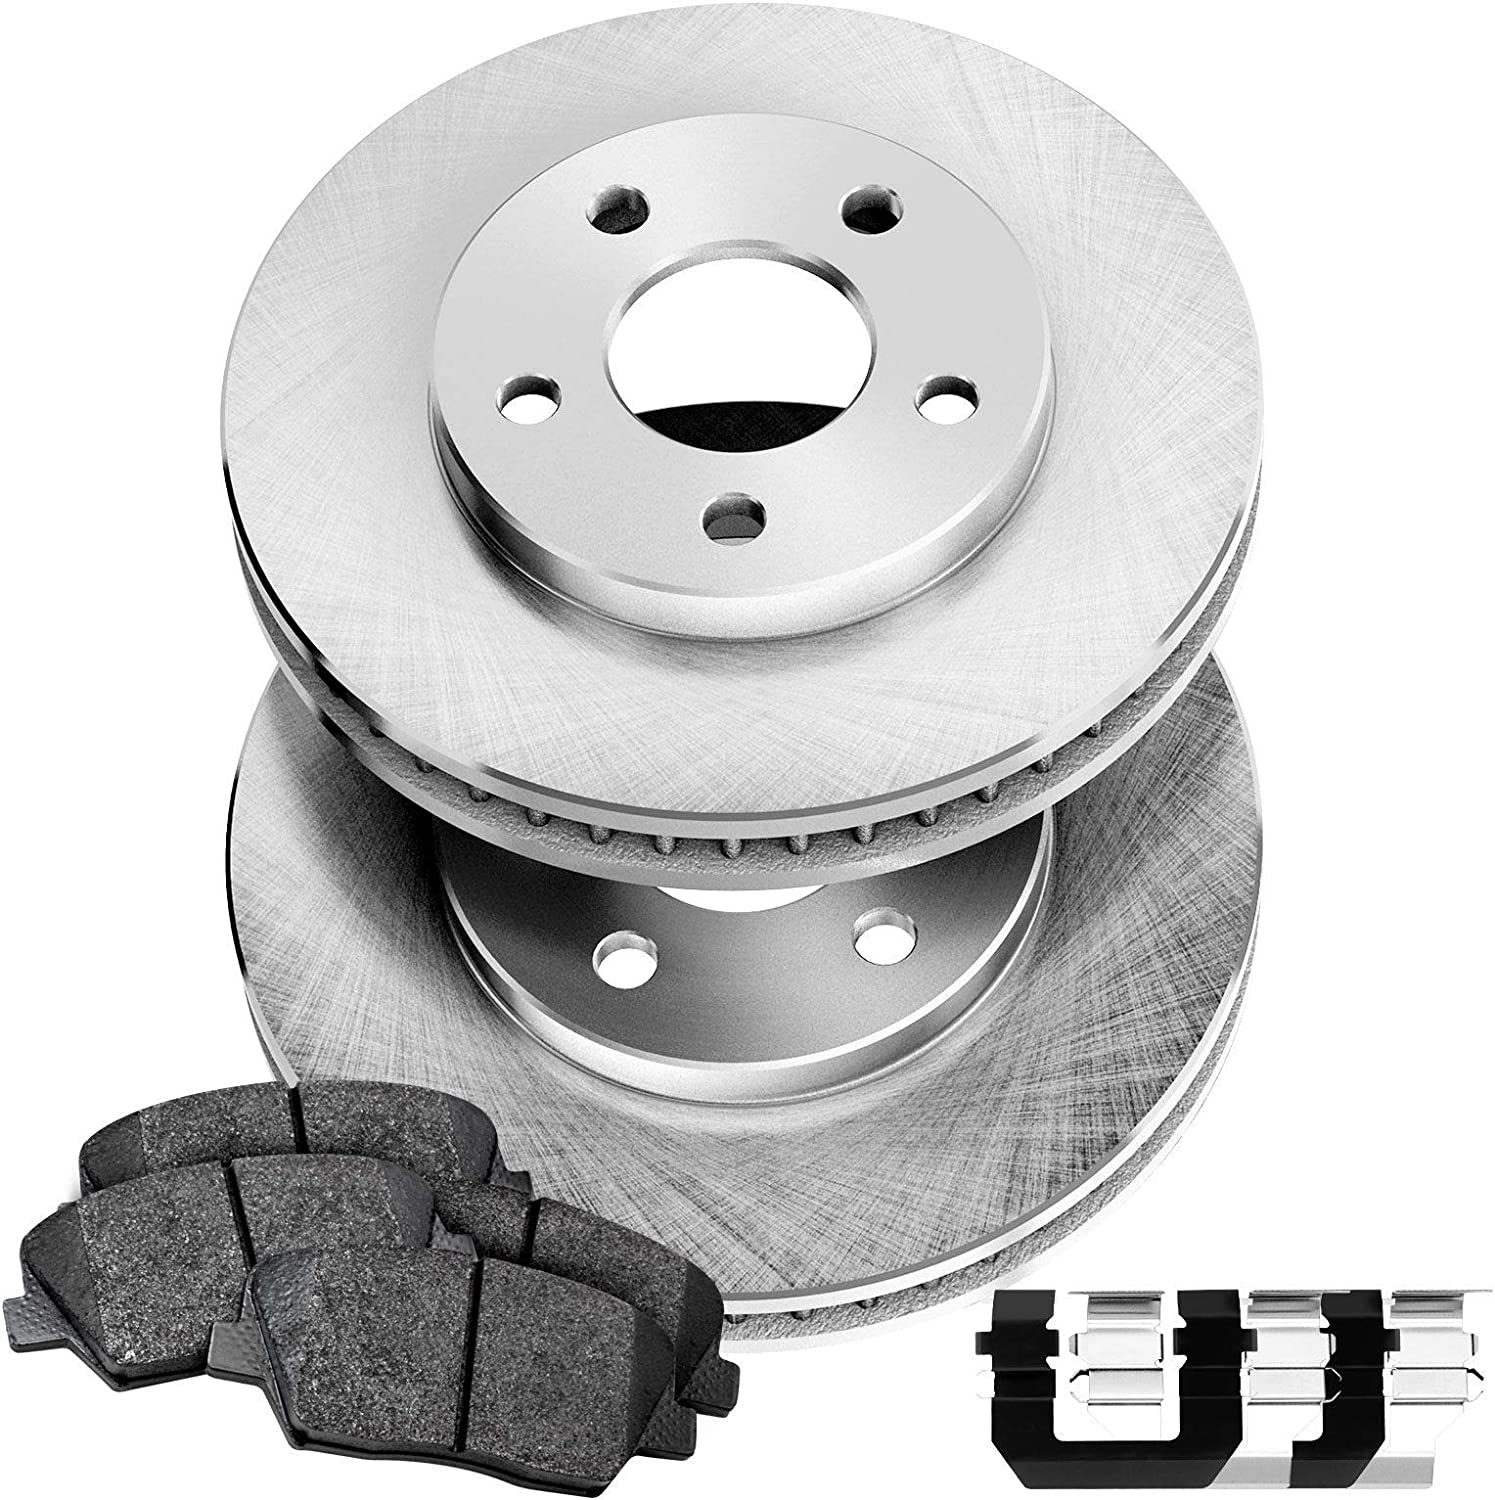 For 2002 2003 2004 2005 2006 Toyota Camry LE SE XLE Front Rotors /& Ceramic Pads